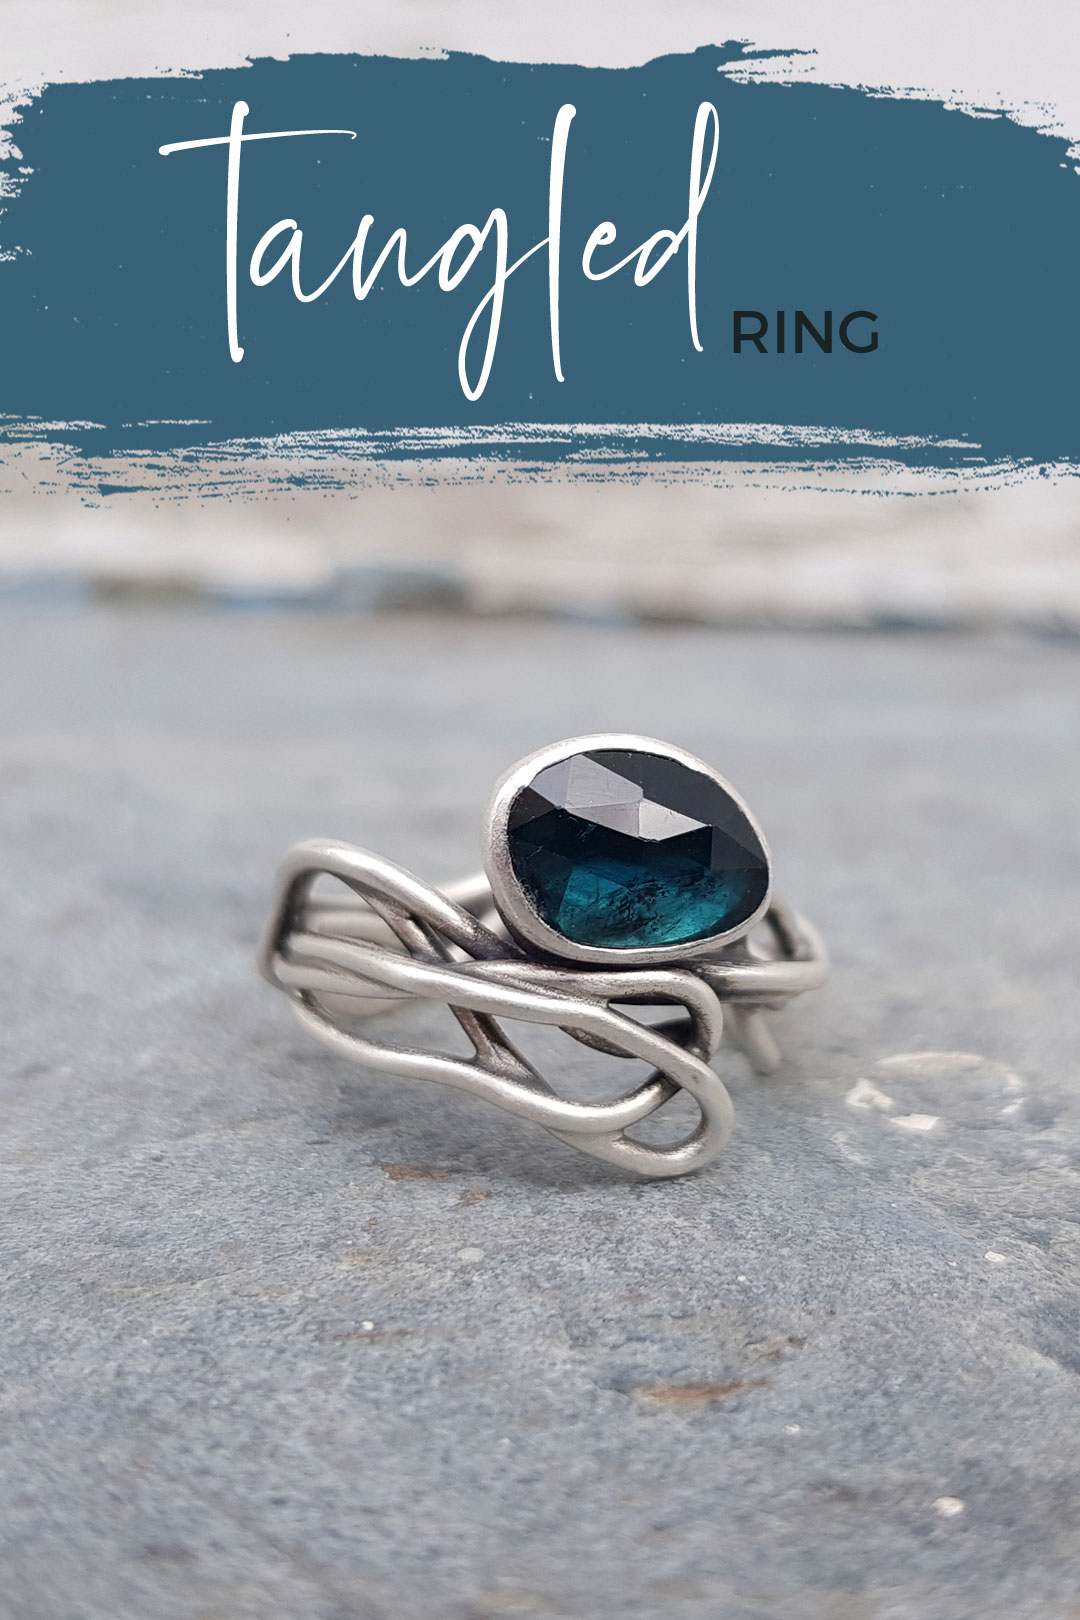 Blue tourmaline and silver ring